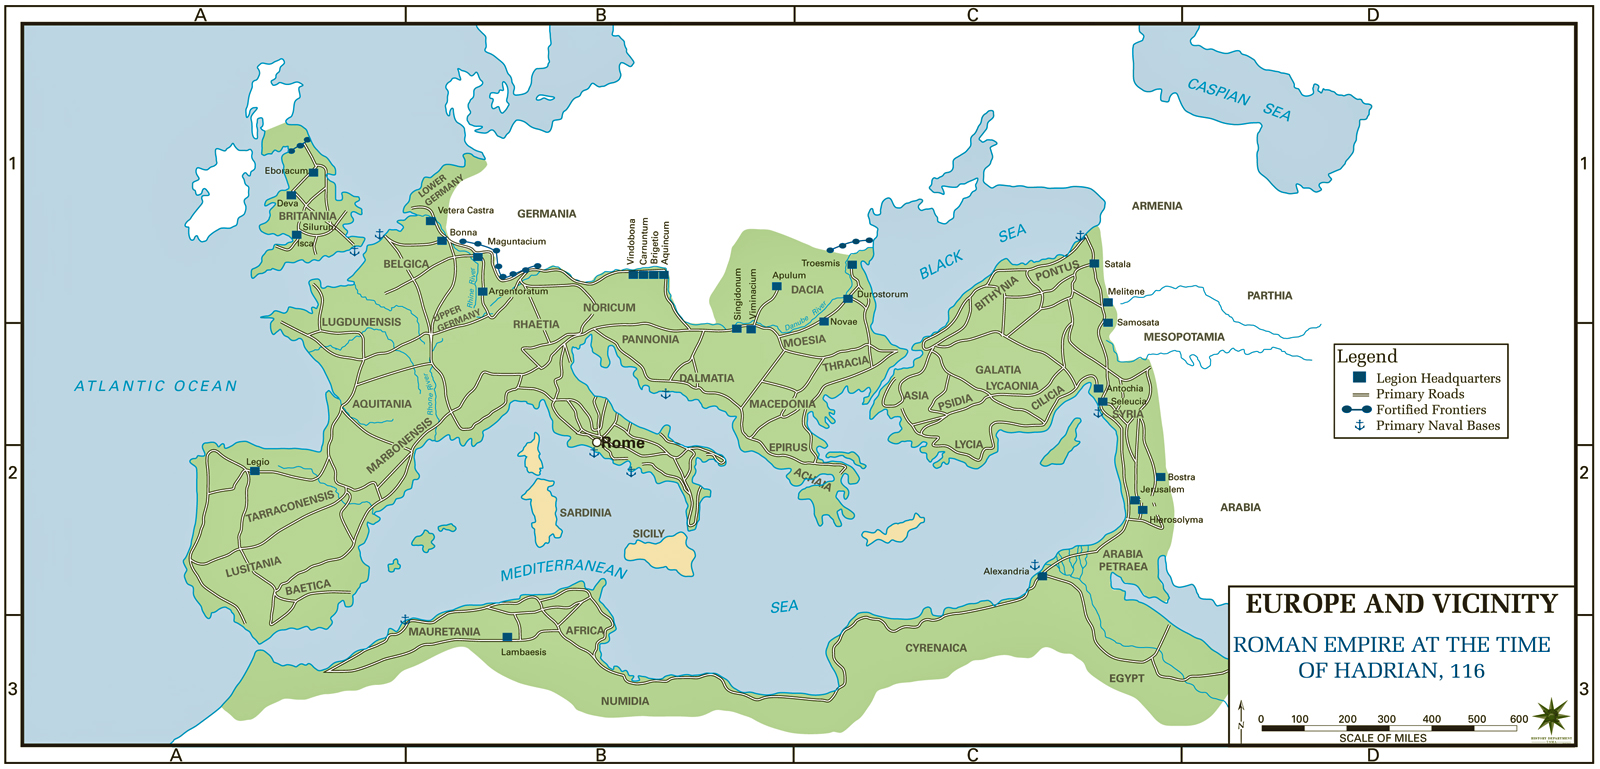 roman empire to 117 ad map Map Of The Roman Empire Ad 117 Usma roman empire to 117 ad map